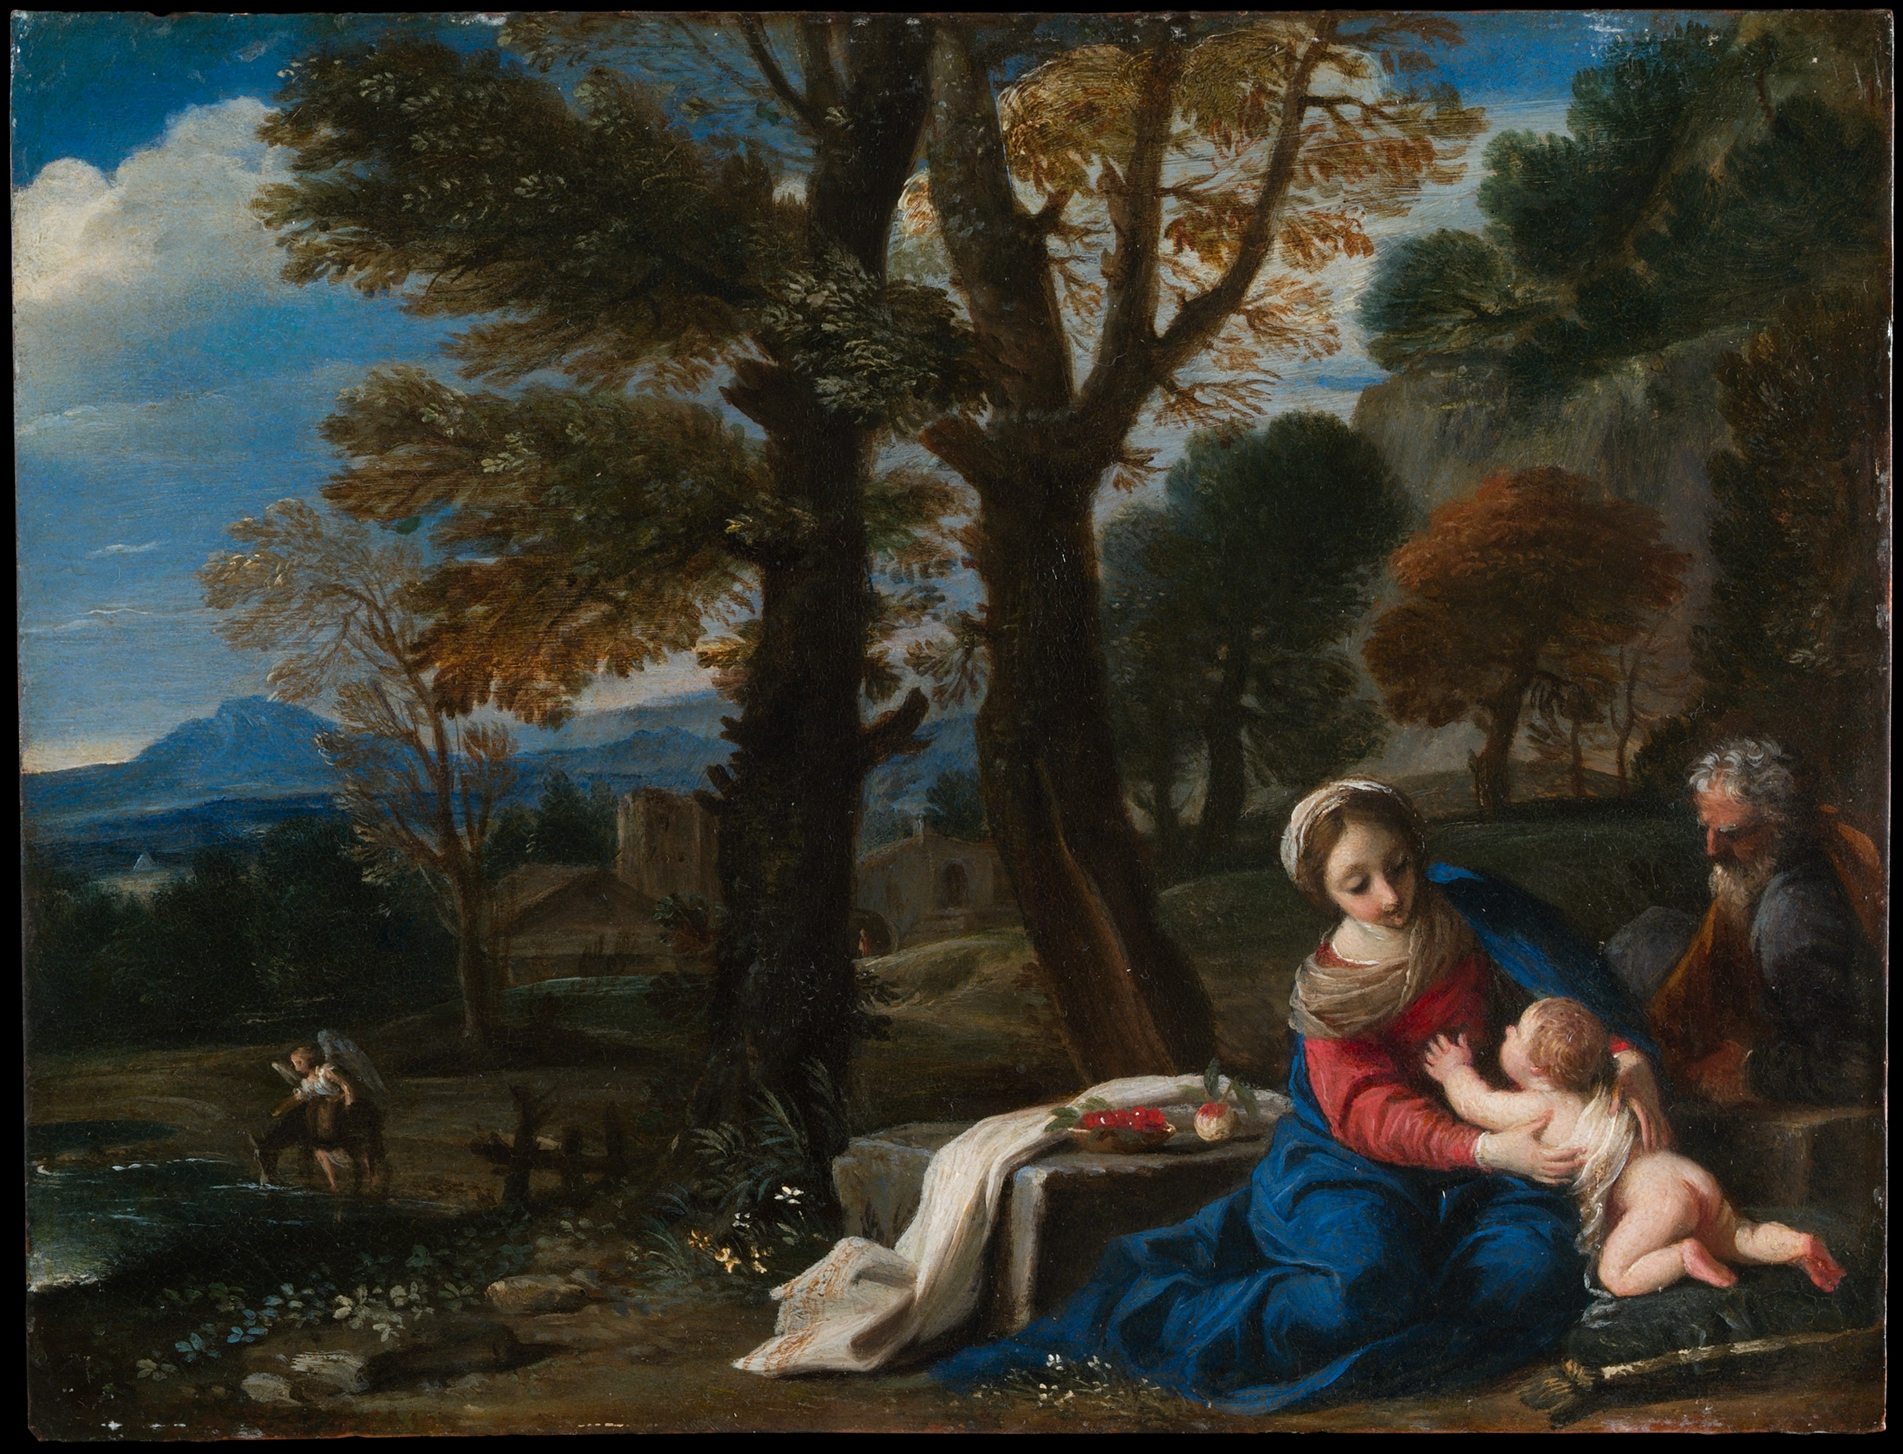 Going for Baroque: Bringing 17th-Century Masters to the Met